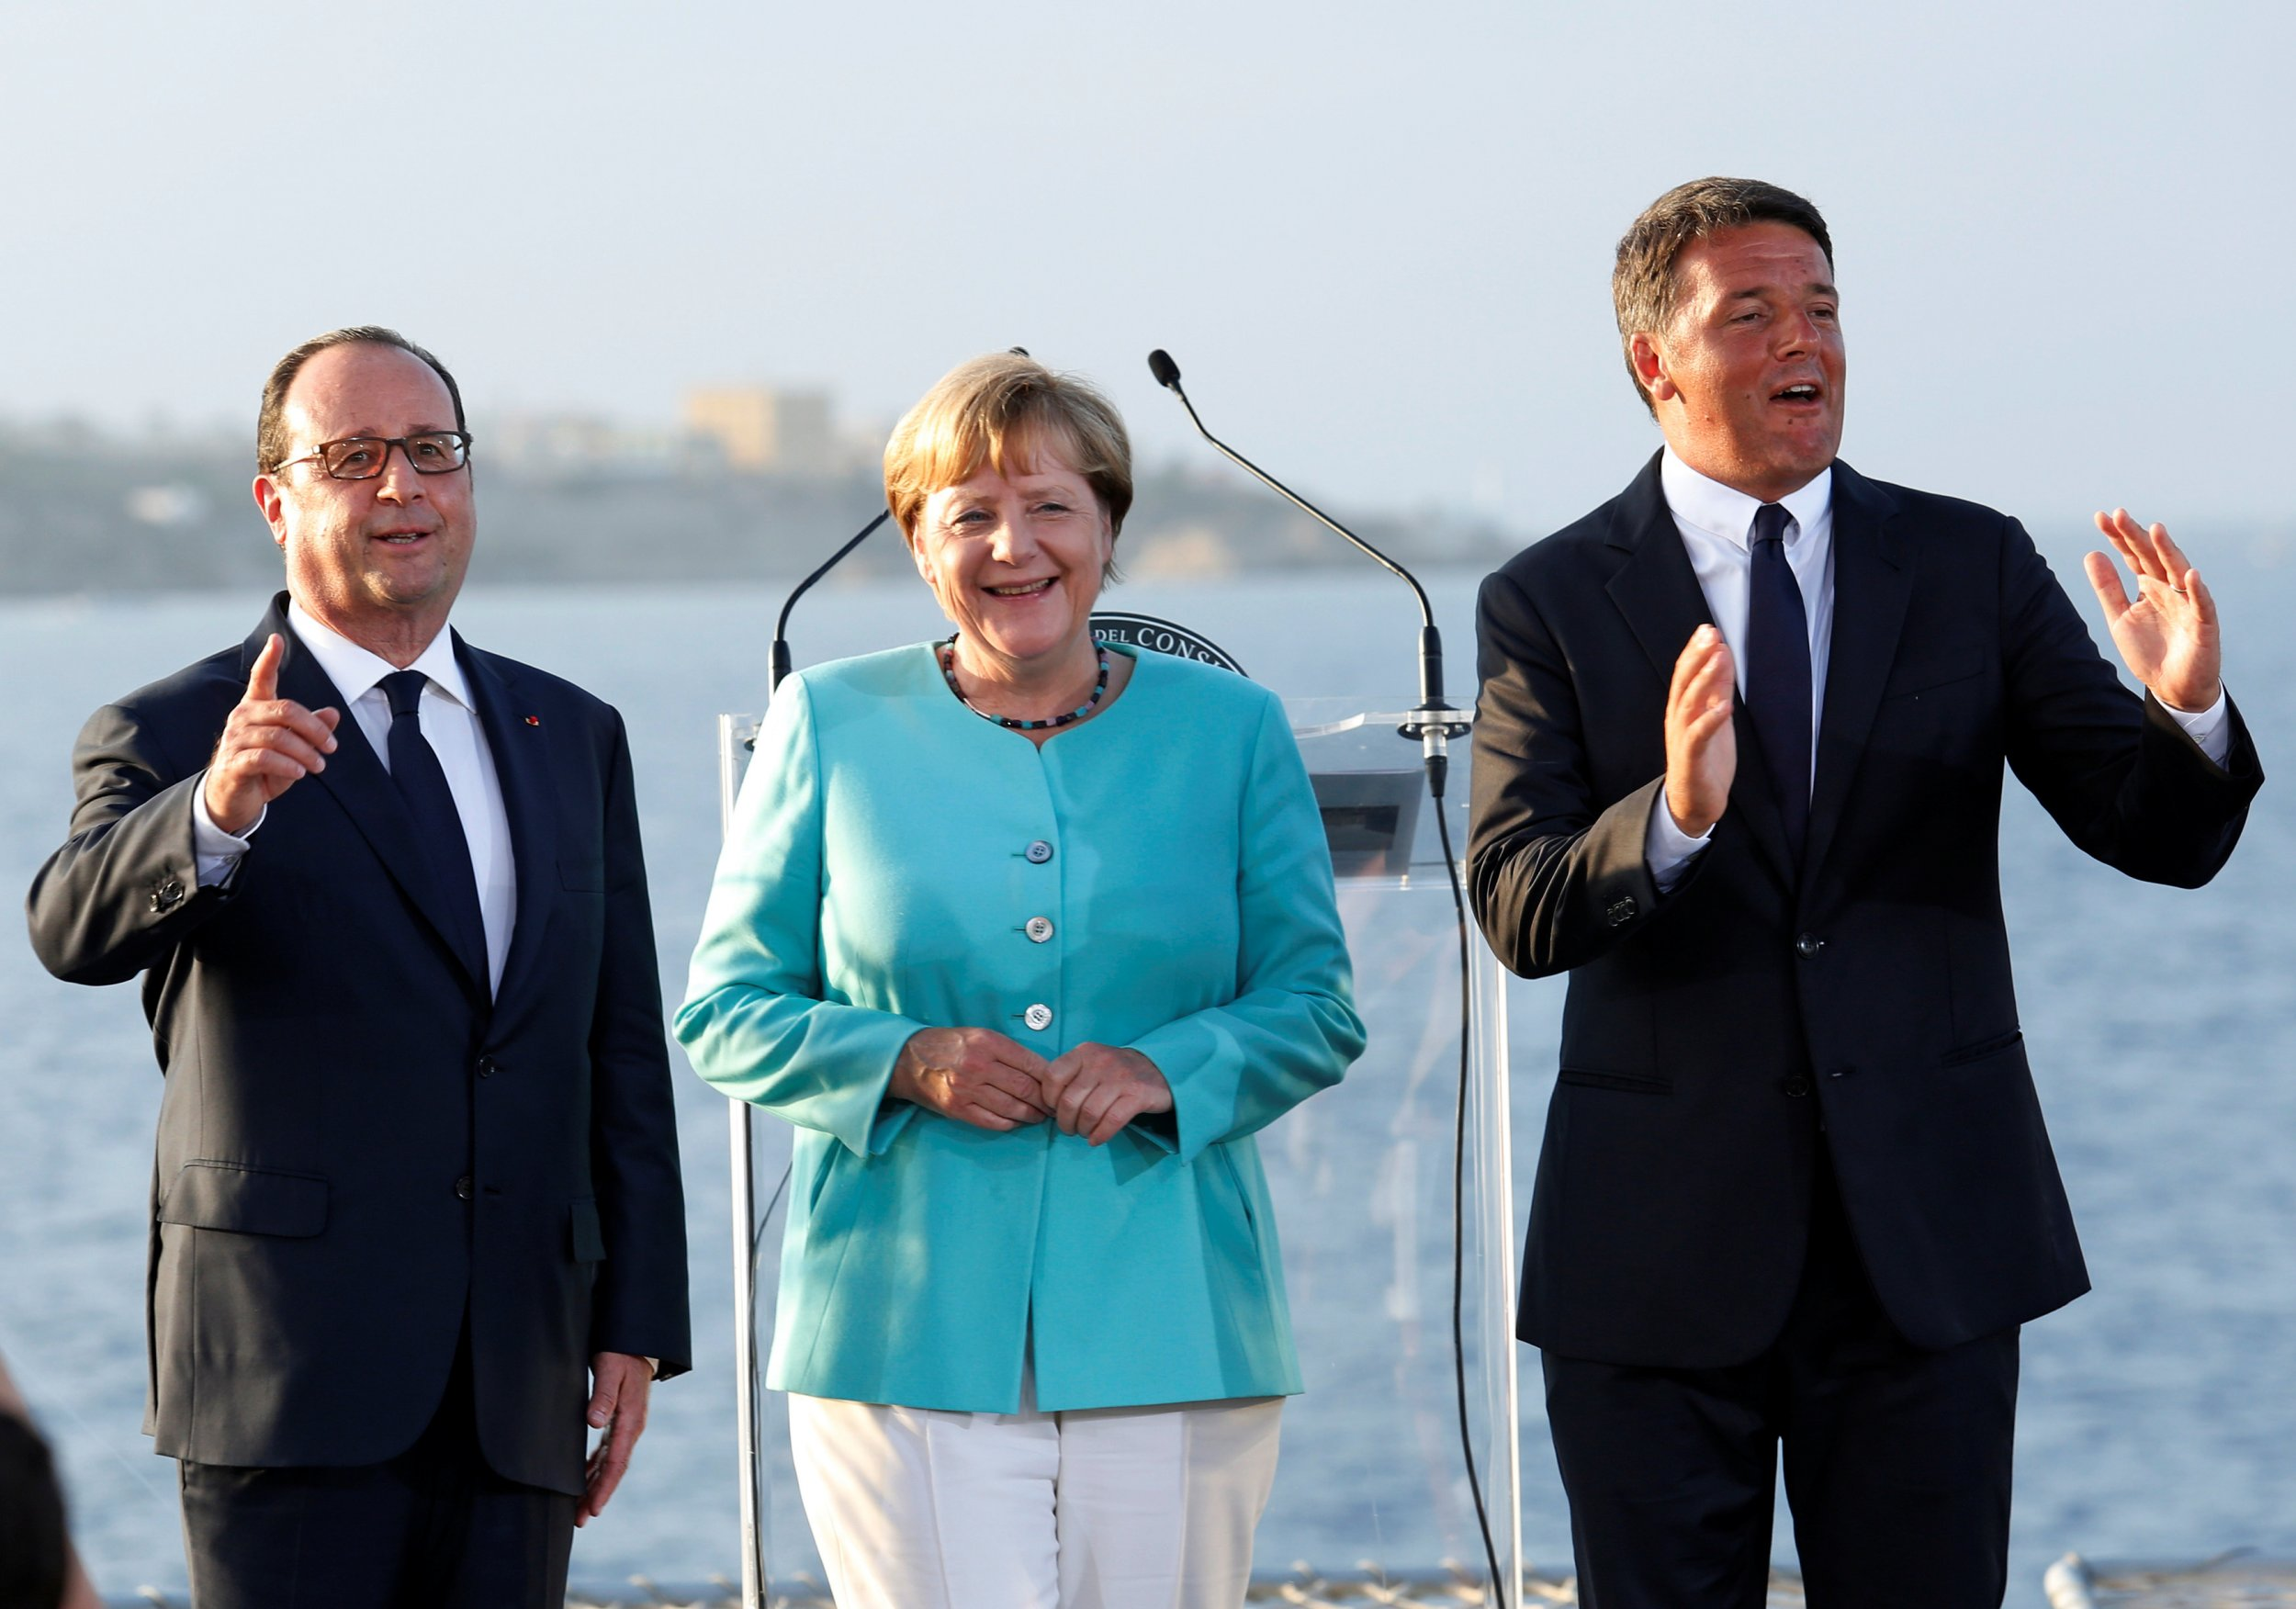 Matteo Renzi, Angela Merkel and Francois Hollande